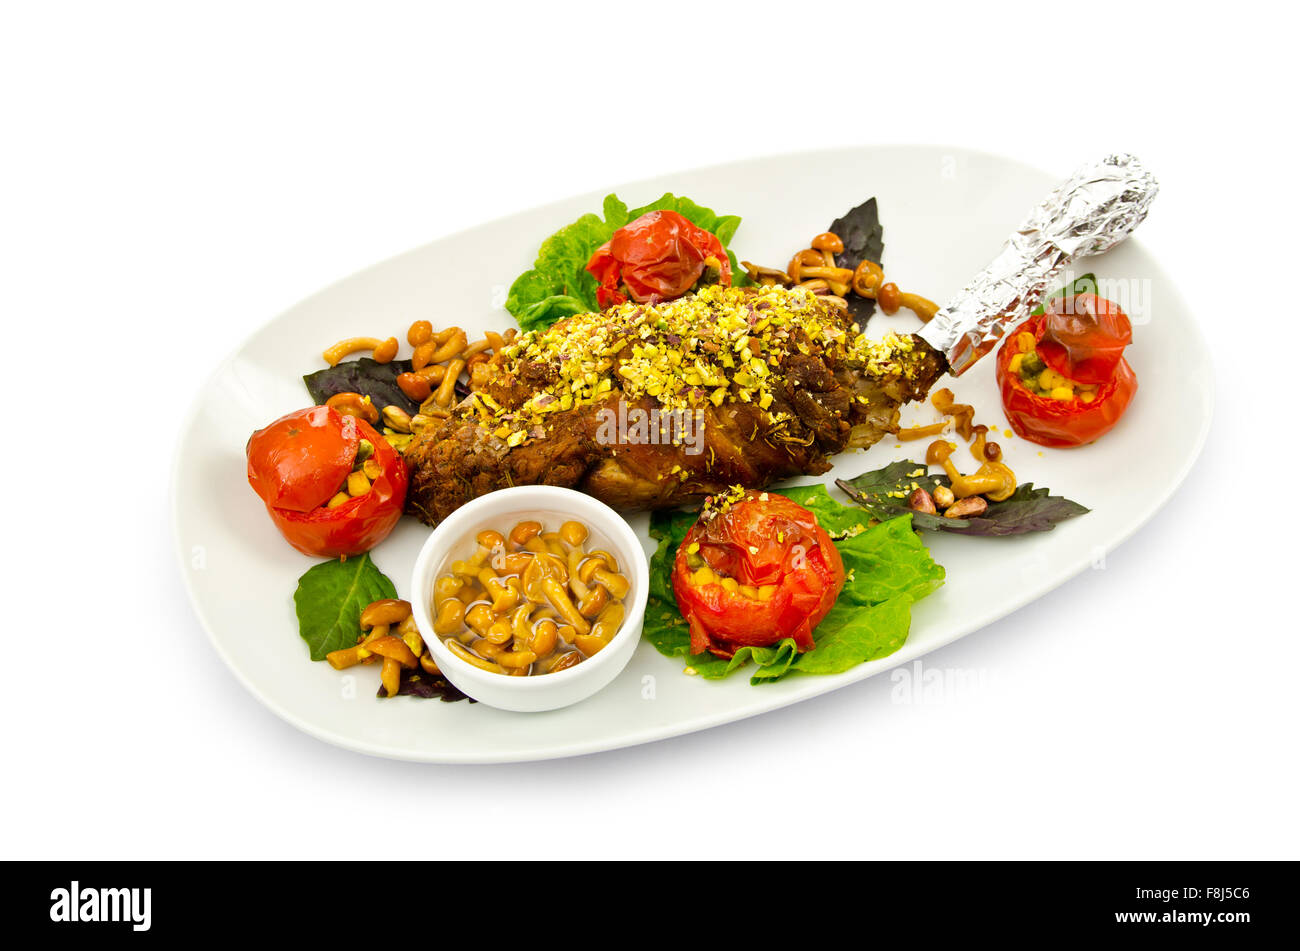 Lamb leg served in the plate - Stock Image